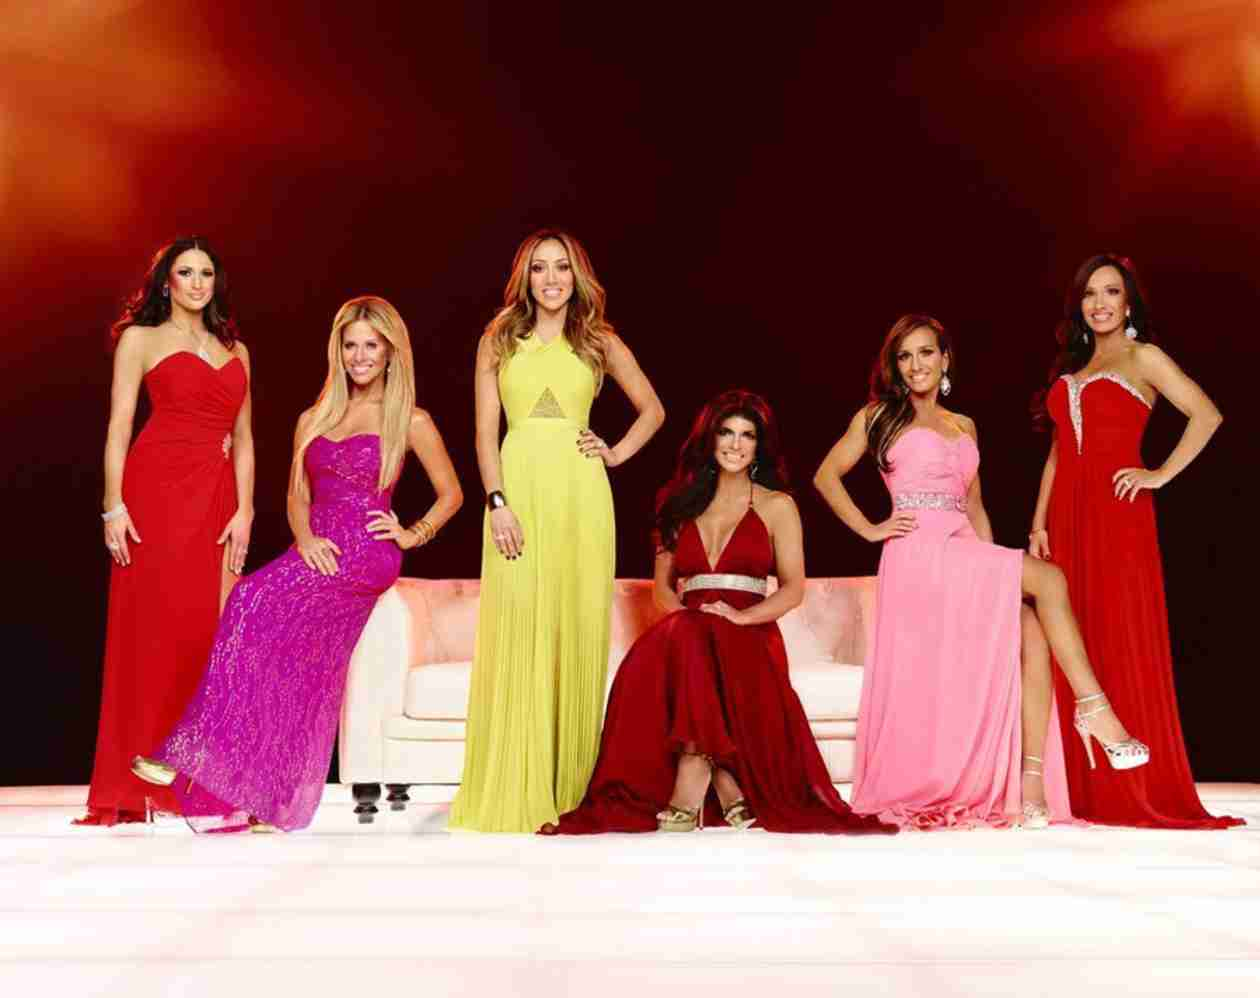 Real Housewives of New Jersey Season 6: Let the Fights Begin! (VIDEO)